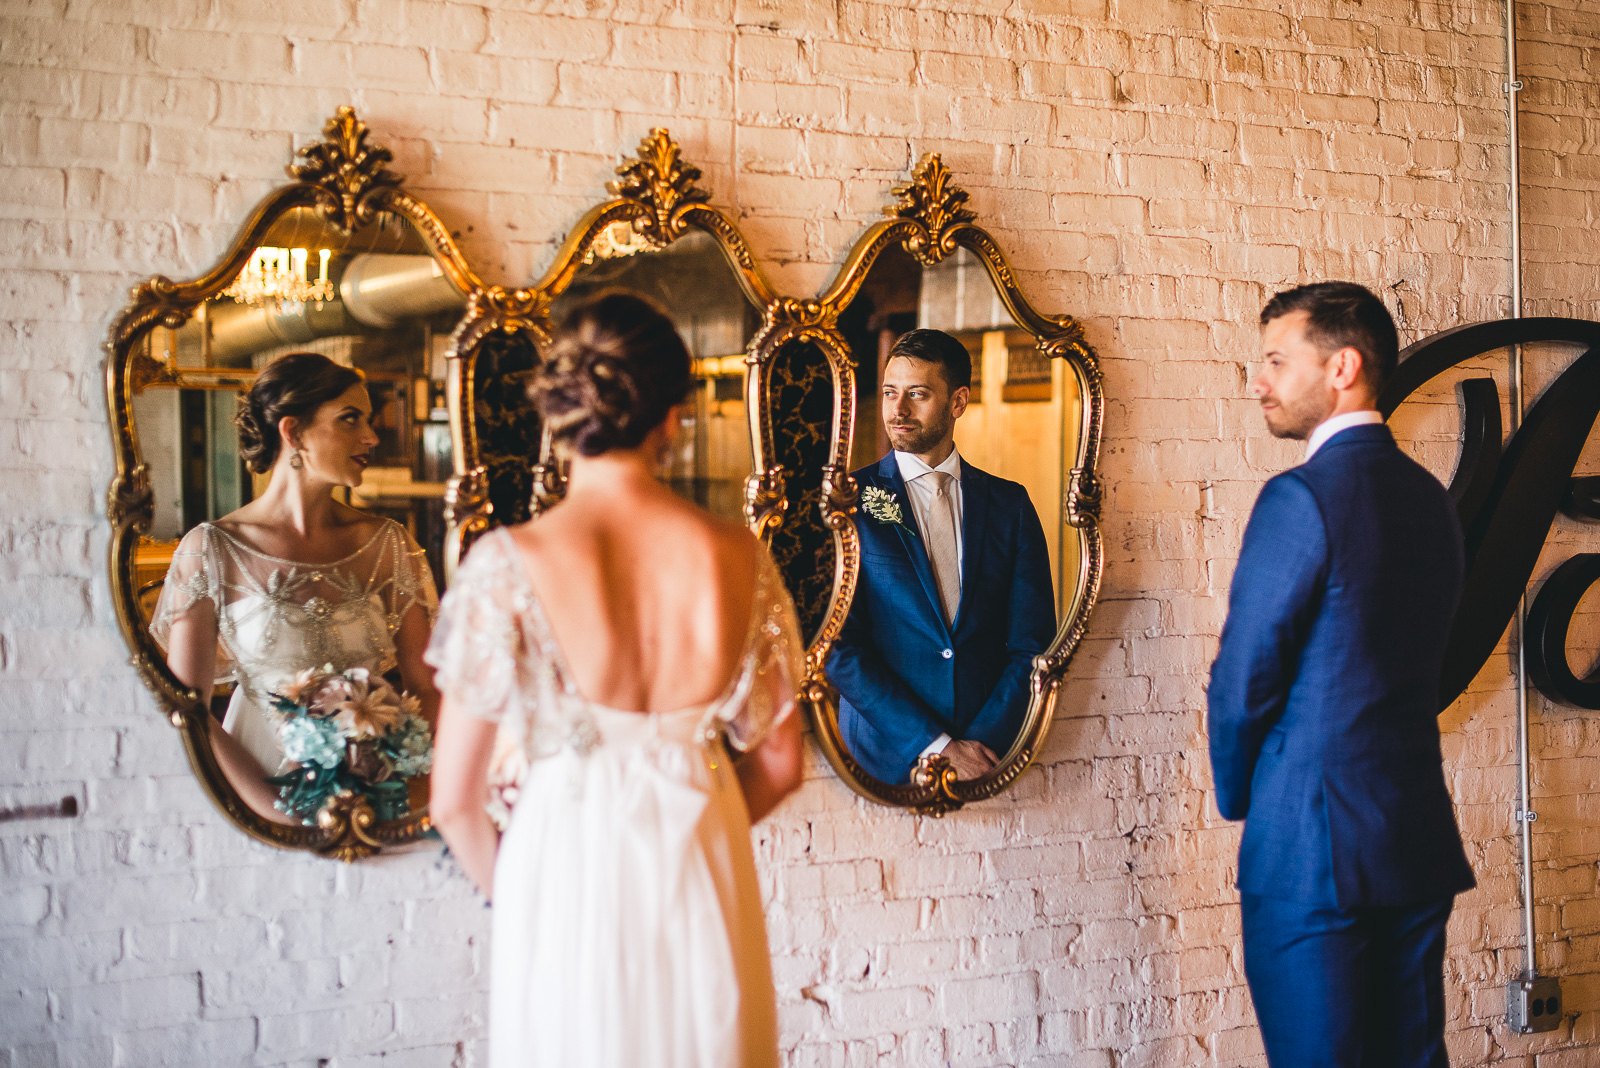 59 chicago wedding photographer best portraits during weddings review 1 - 2018 in Review // My Favorite Chicago Wedding Photography Portraits